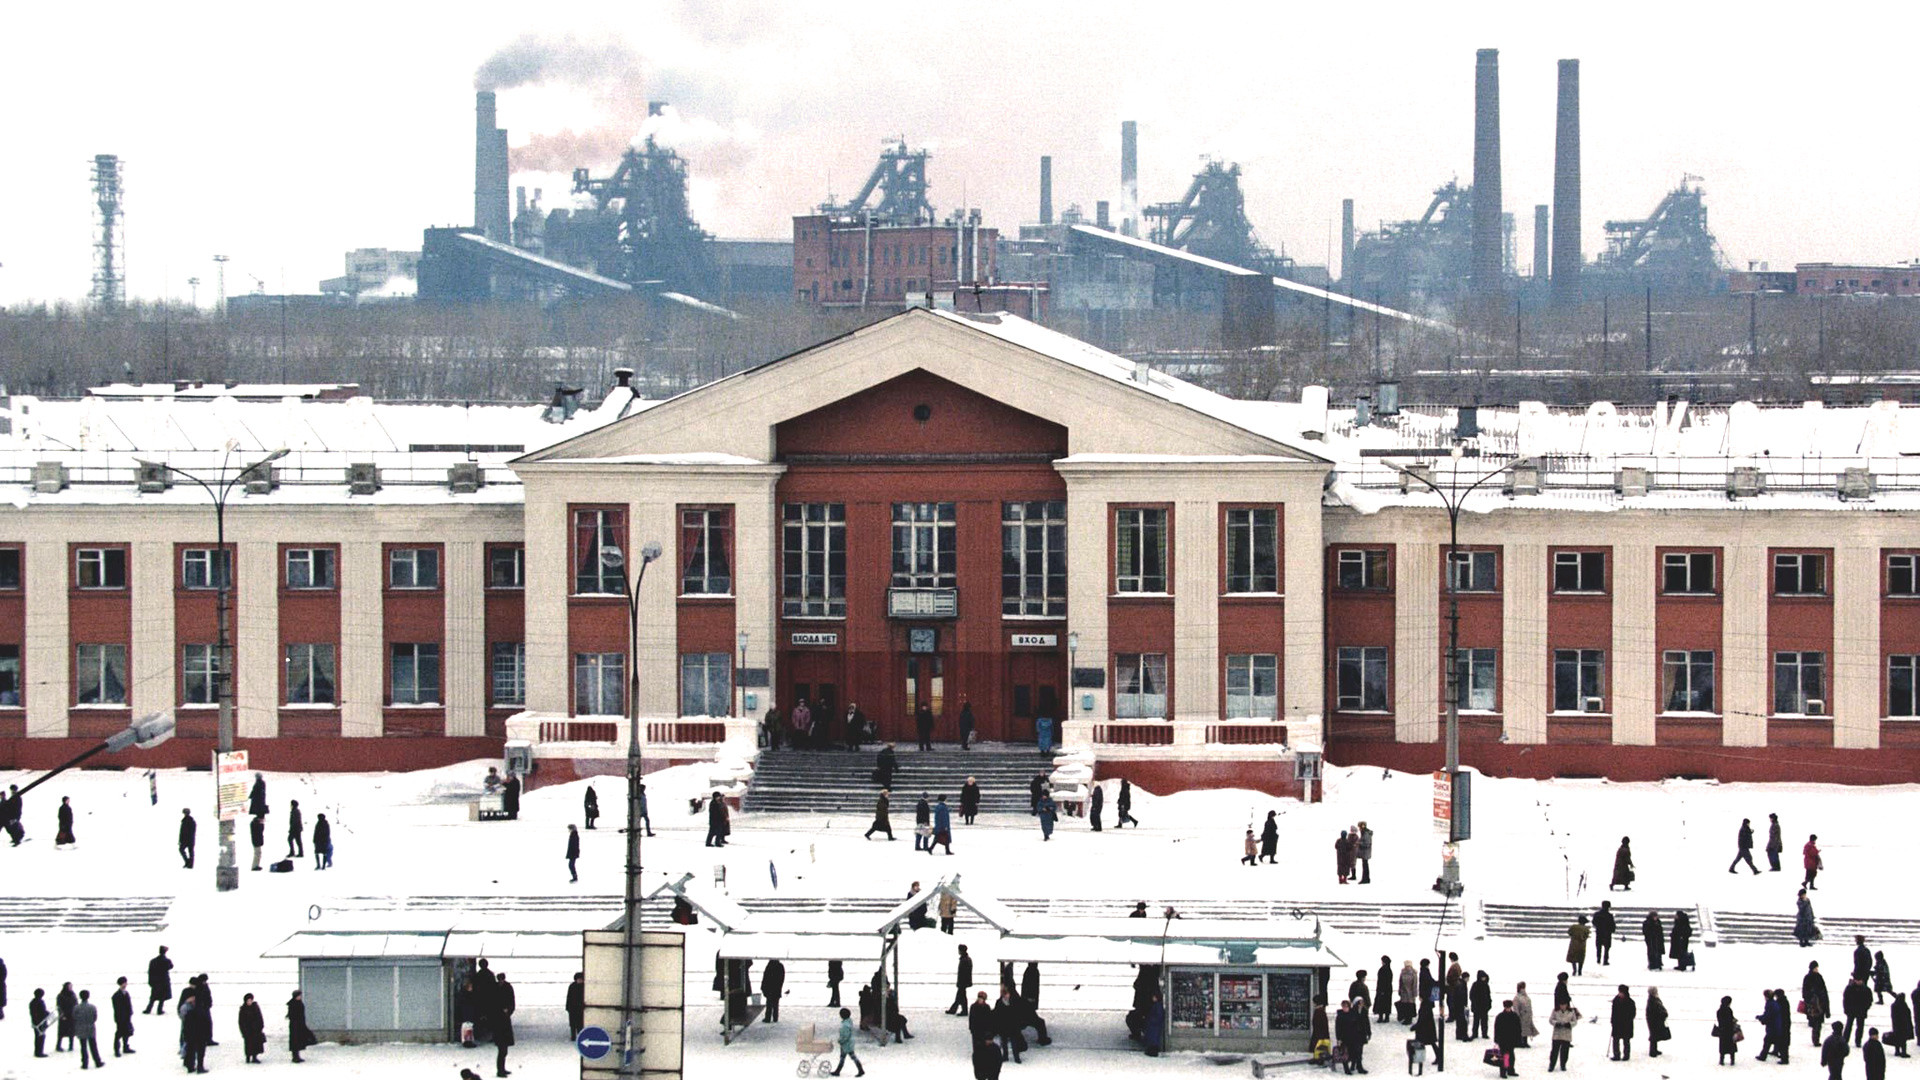 The railway station in Nizhny Tagil, Sverdlovsk Region.